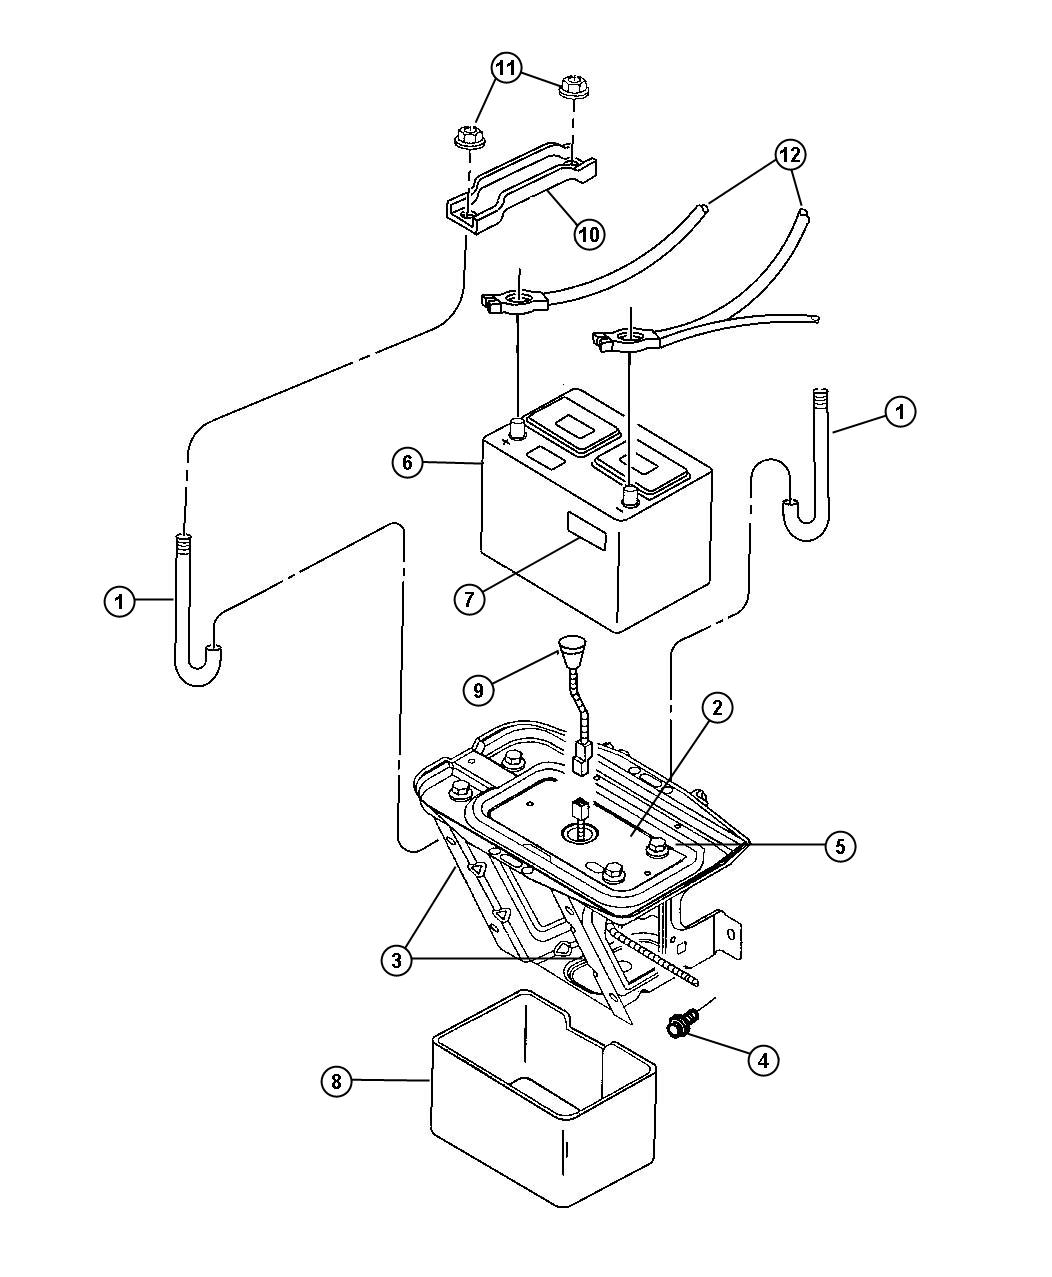 Jeep Wrangler Battery Tray And Cables